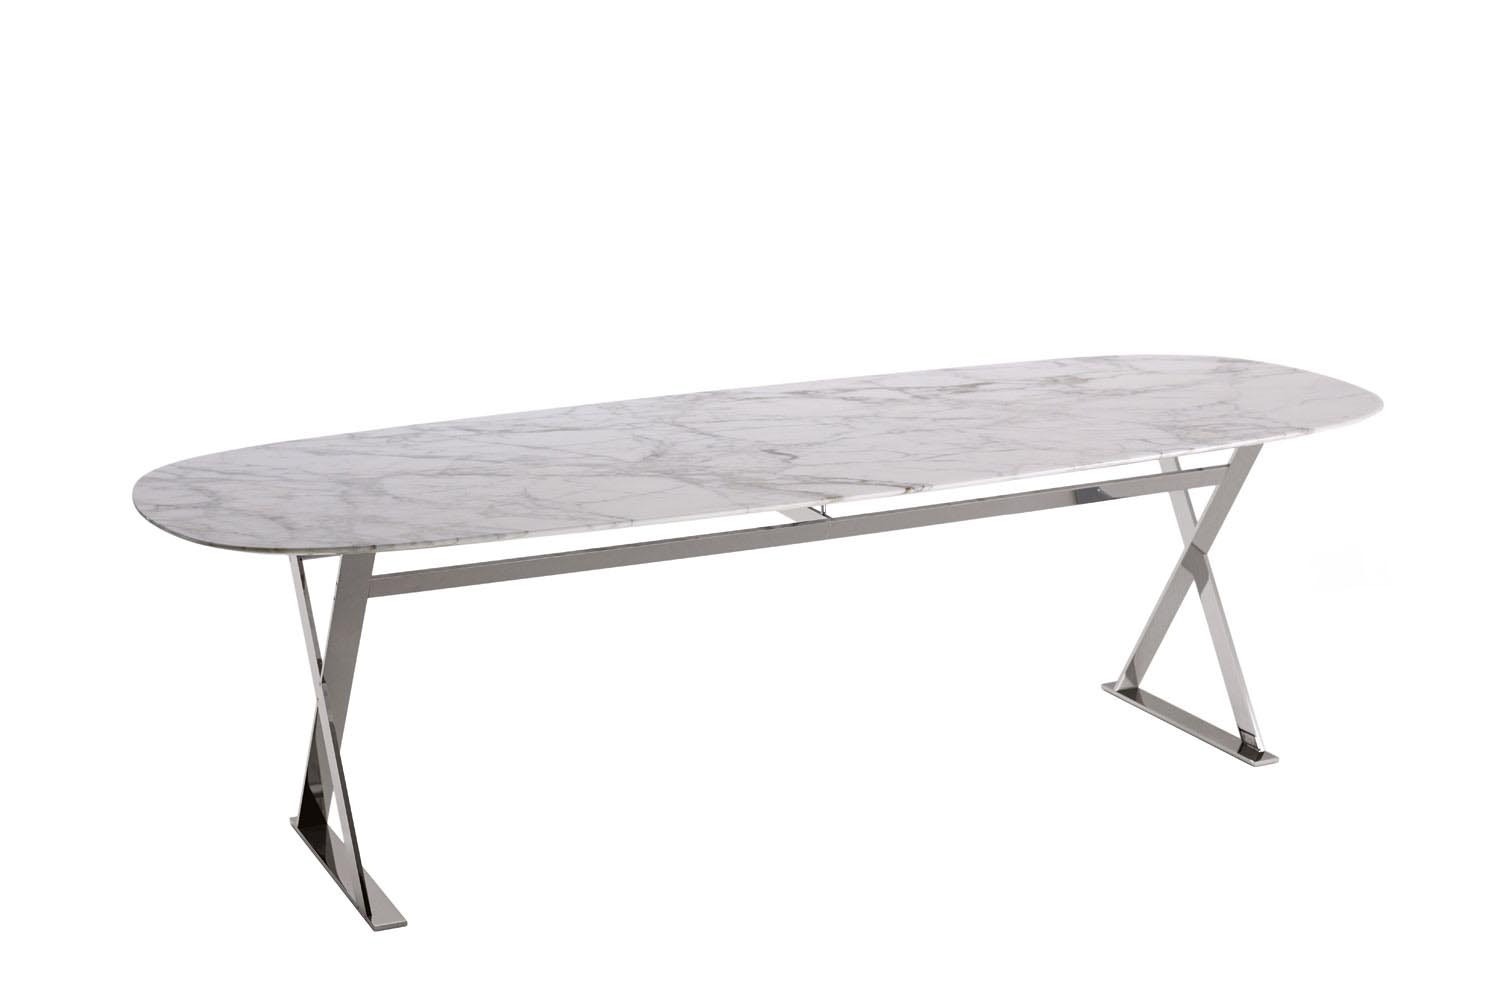 Pathos Table by Antonio Citterio for Maxalto